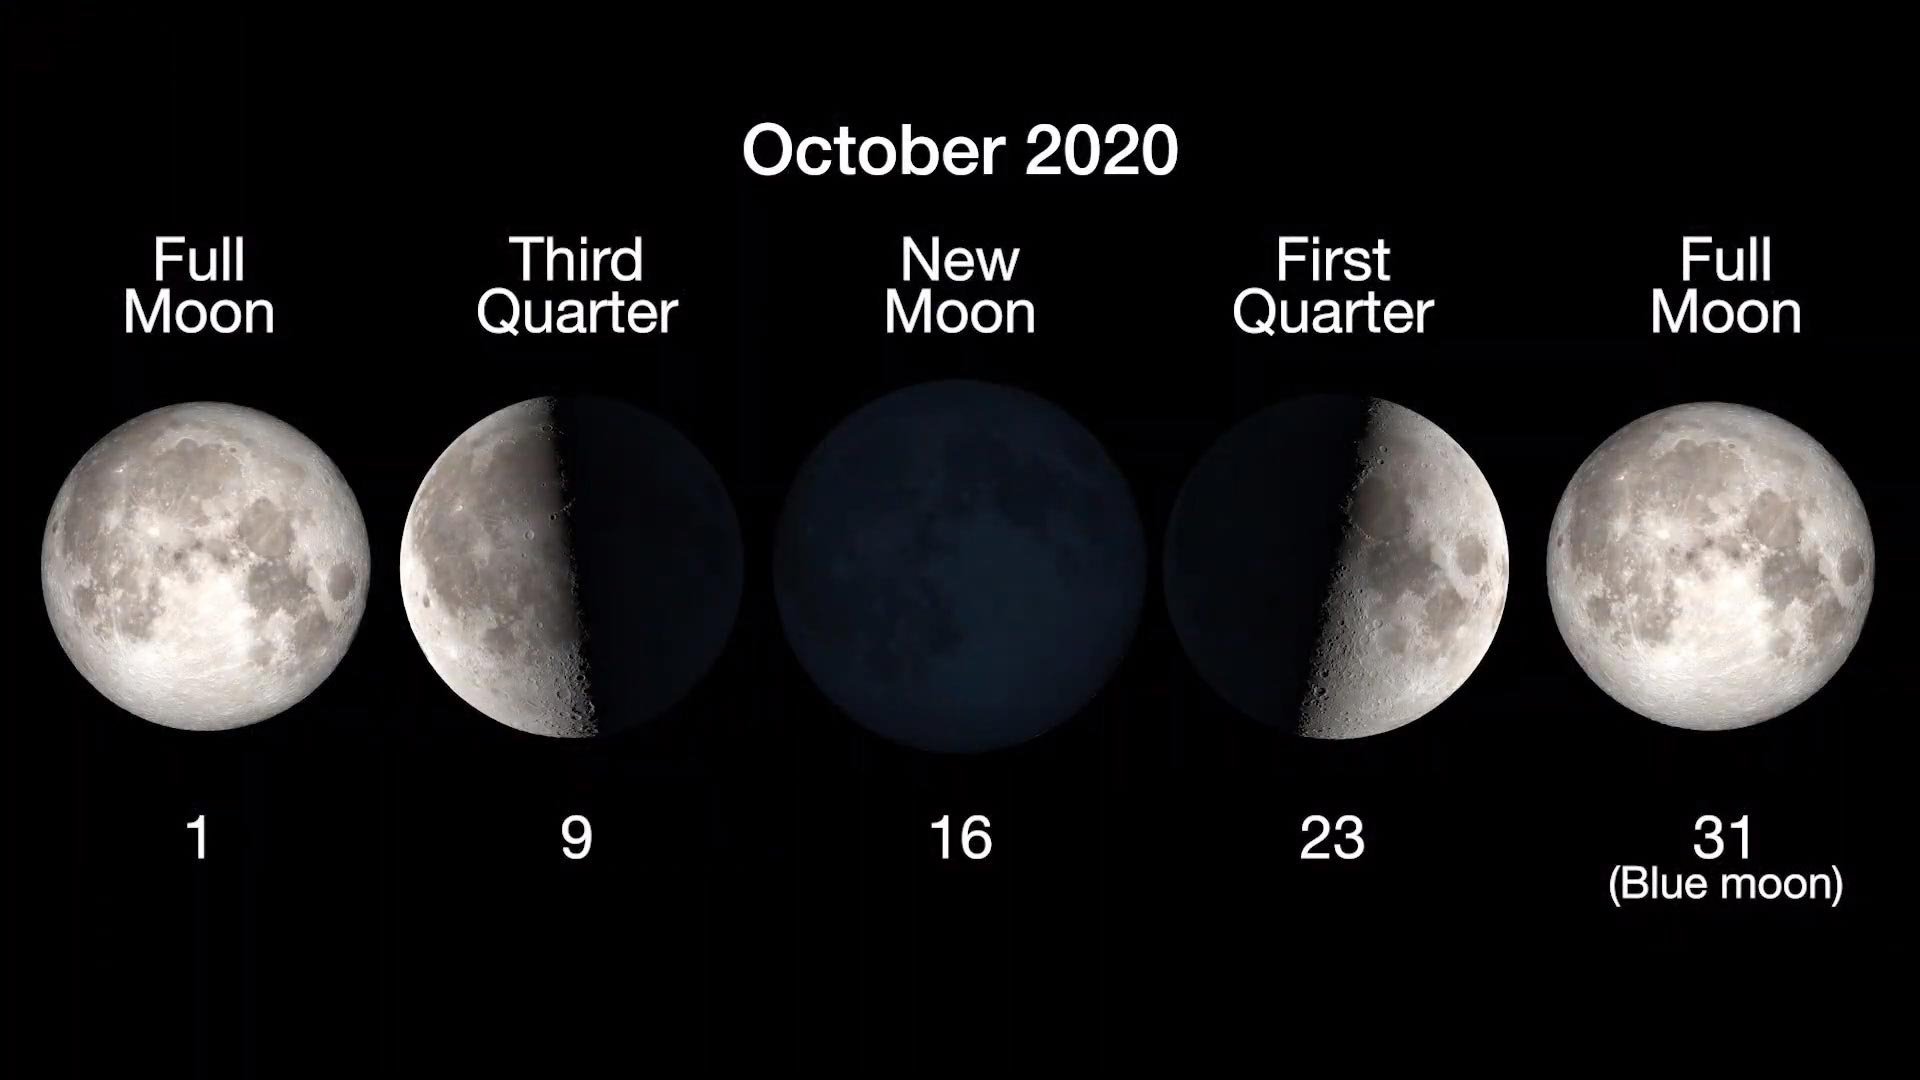 October 2020 Skywatching Tips From Nasa: Harvest Moon, Blue